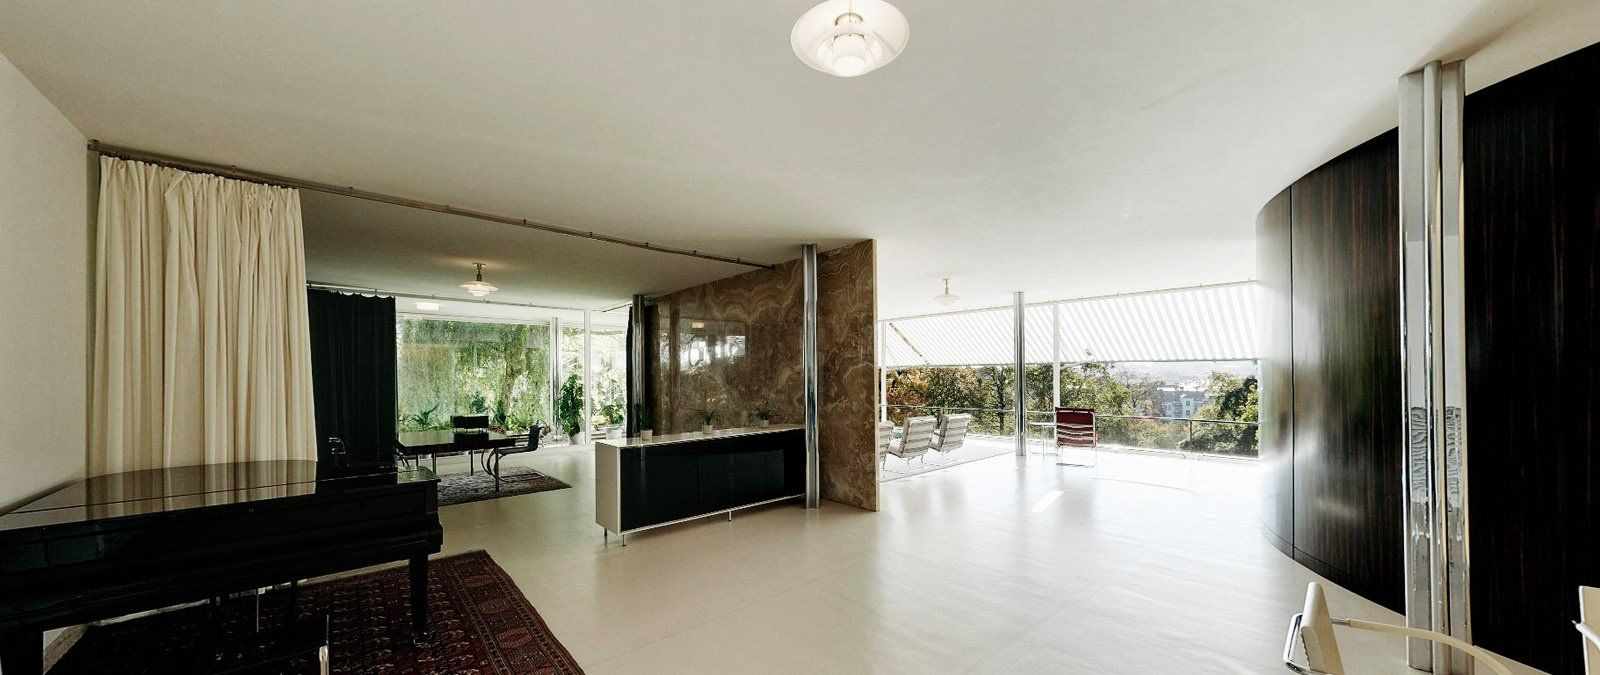 Mies Der Rohe Haus Tugendhat villa tugendhat the home s awe inspiring centerpiece is a vast open